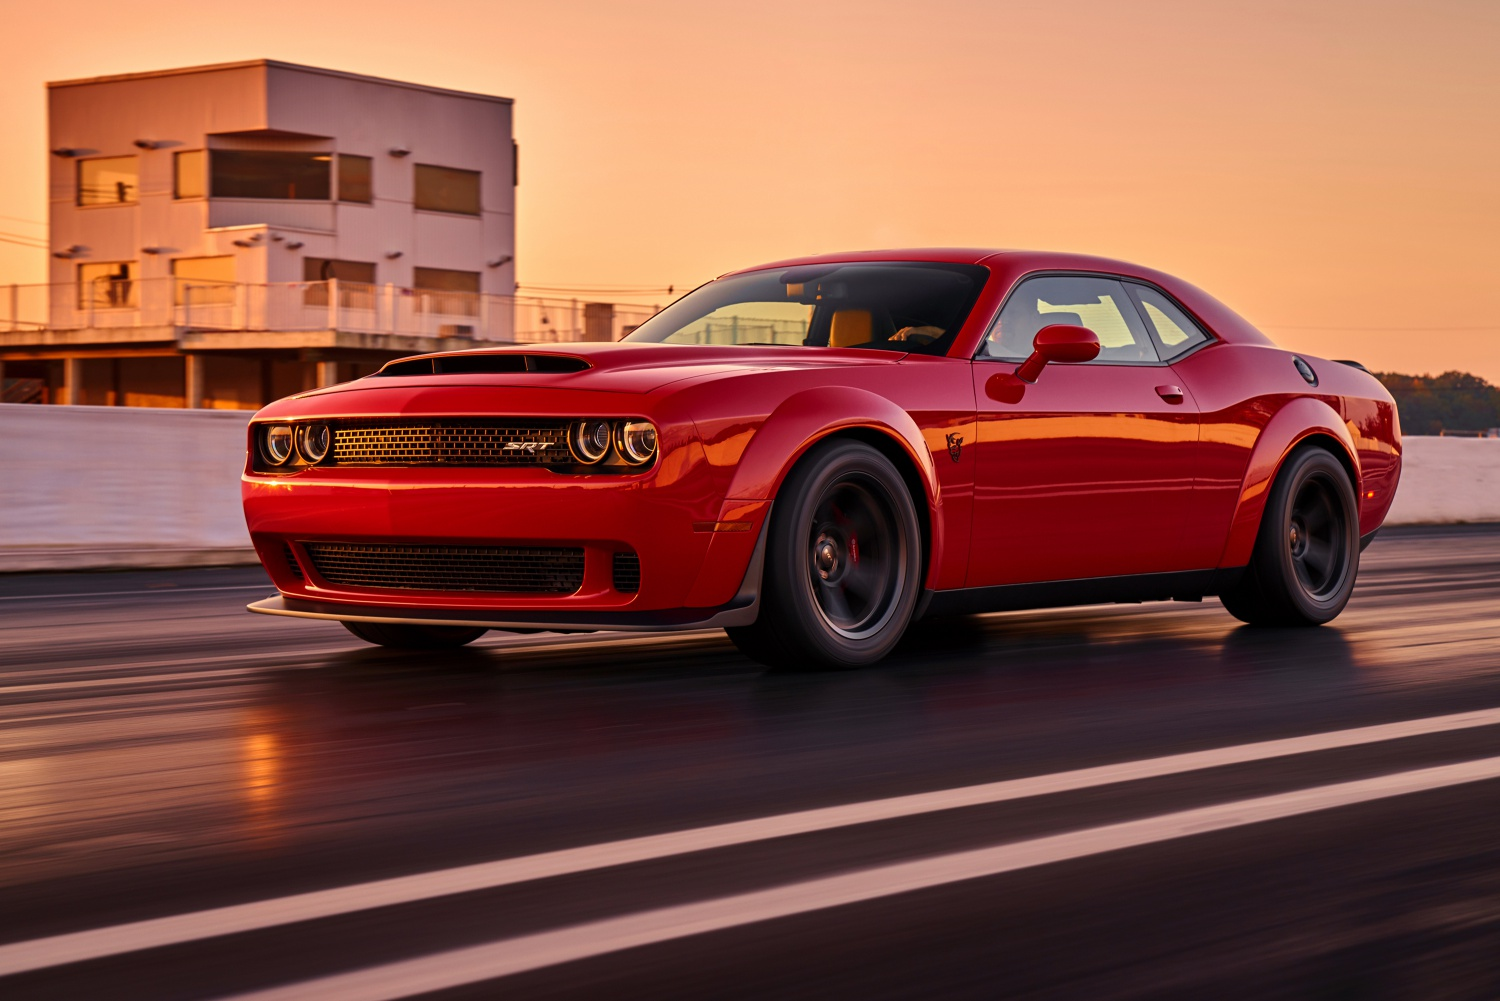 840hp 2018 Dodge Challenger SRT Demon